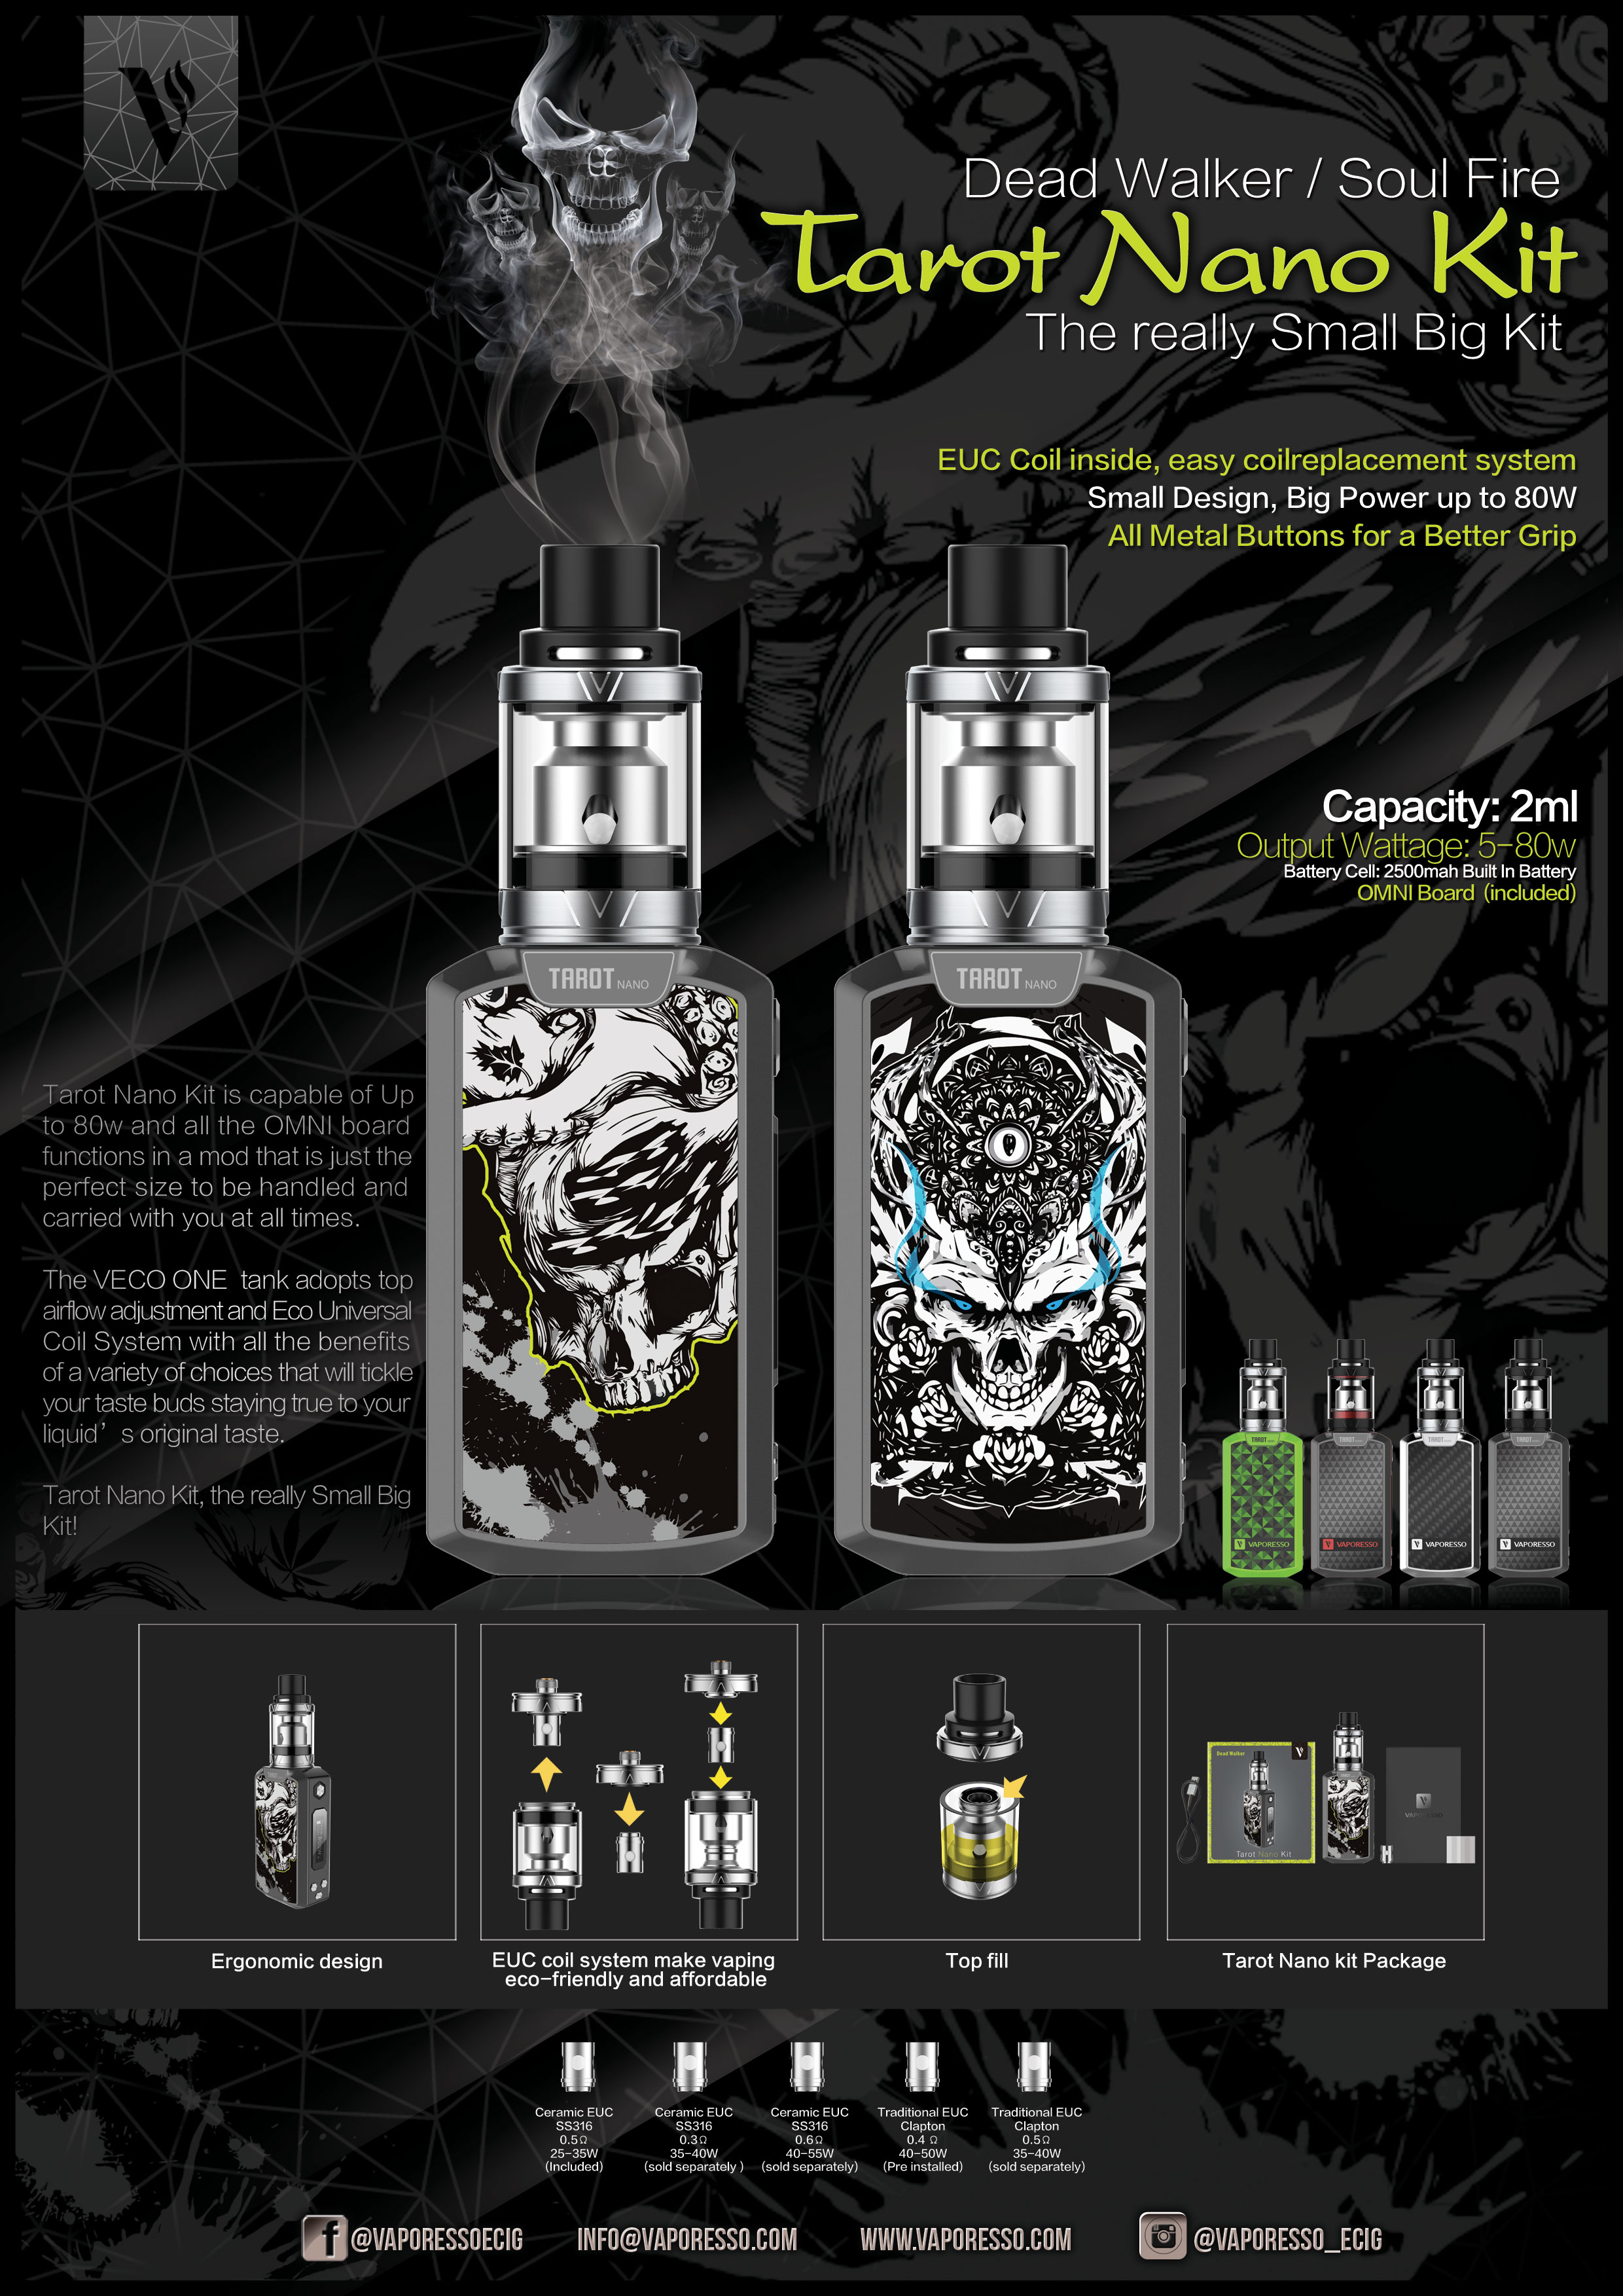 Vaporesso Downloads, User Manuals and Firmware » Vaporesso